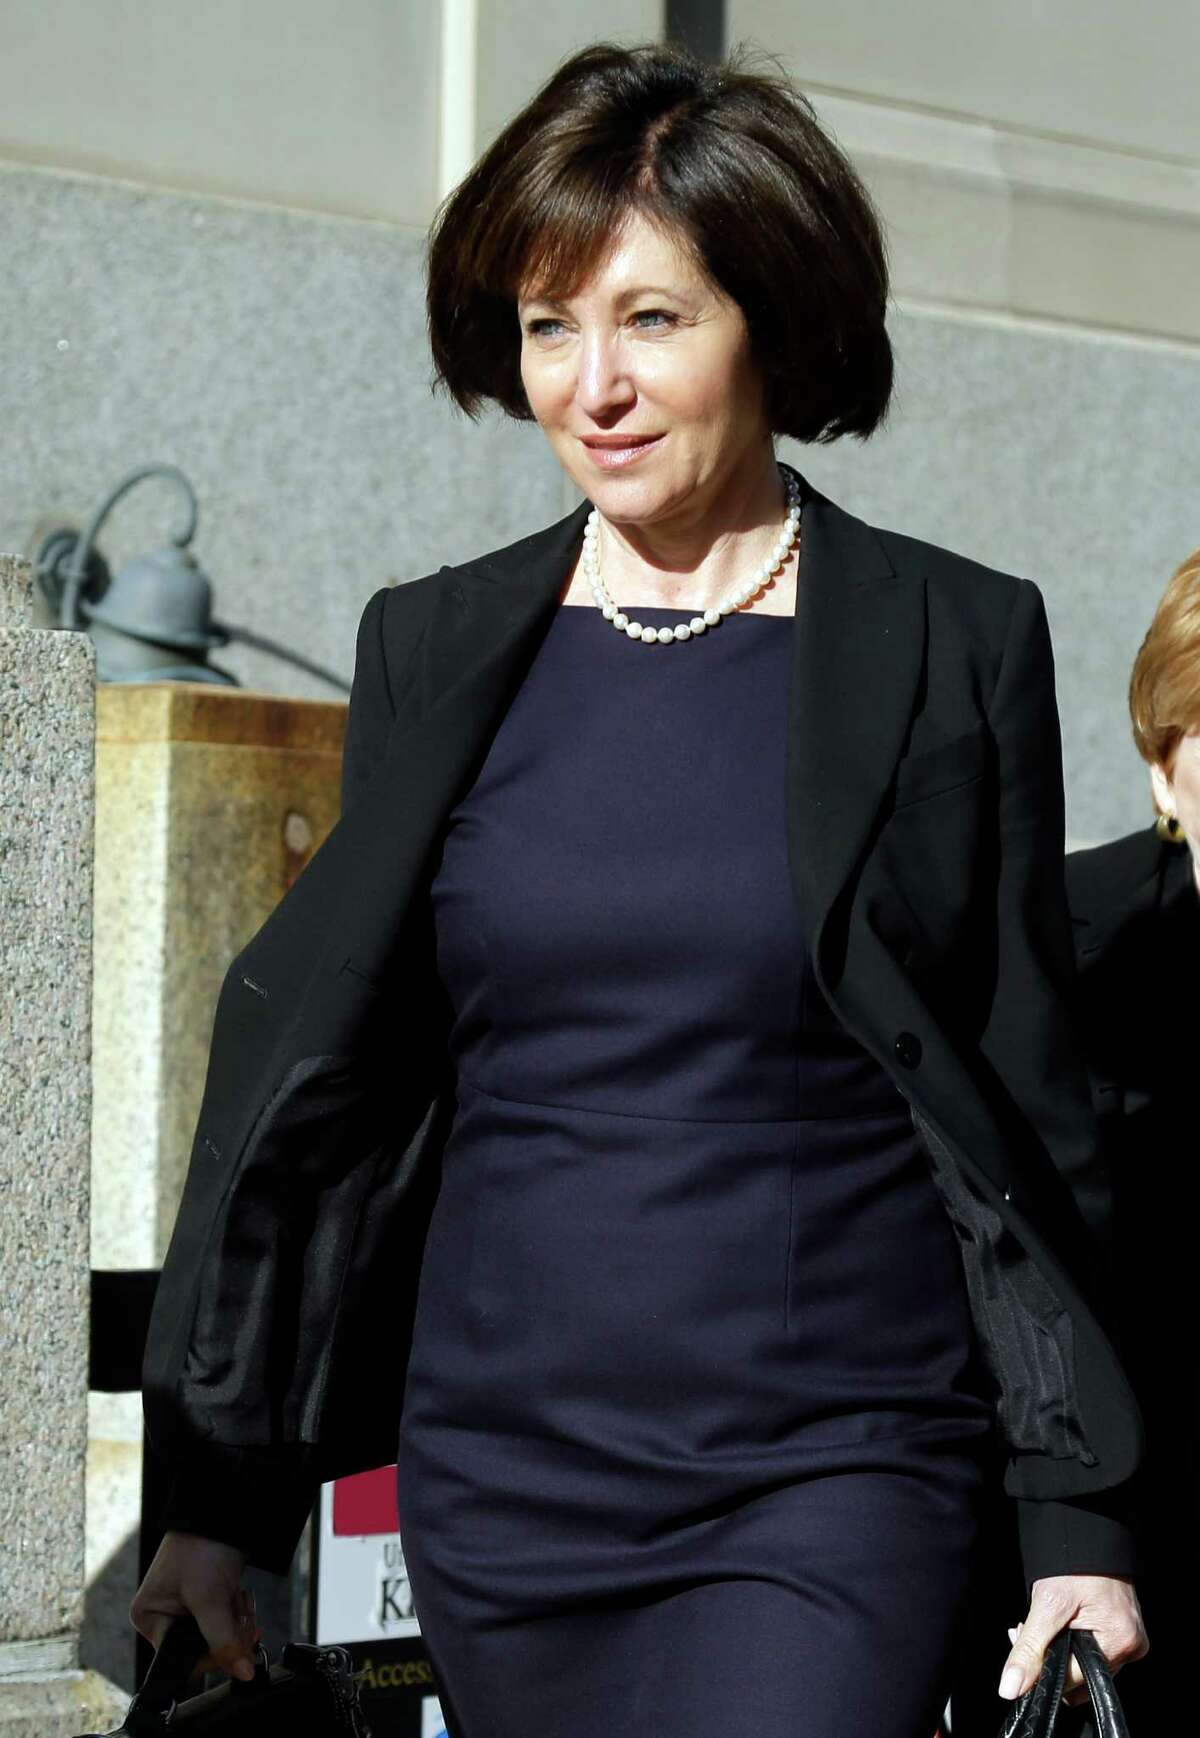 Francine Katz leaves court earlier this month in St. Louis.